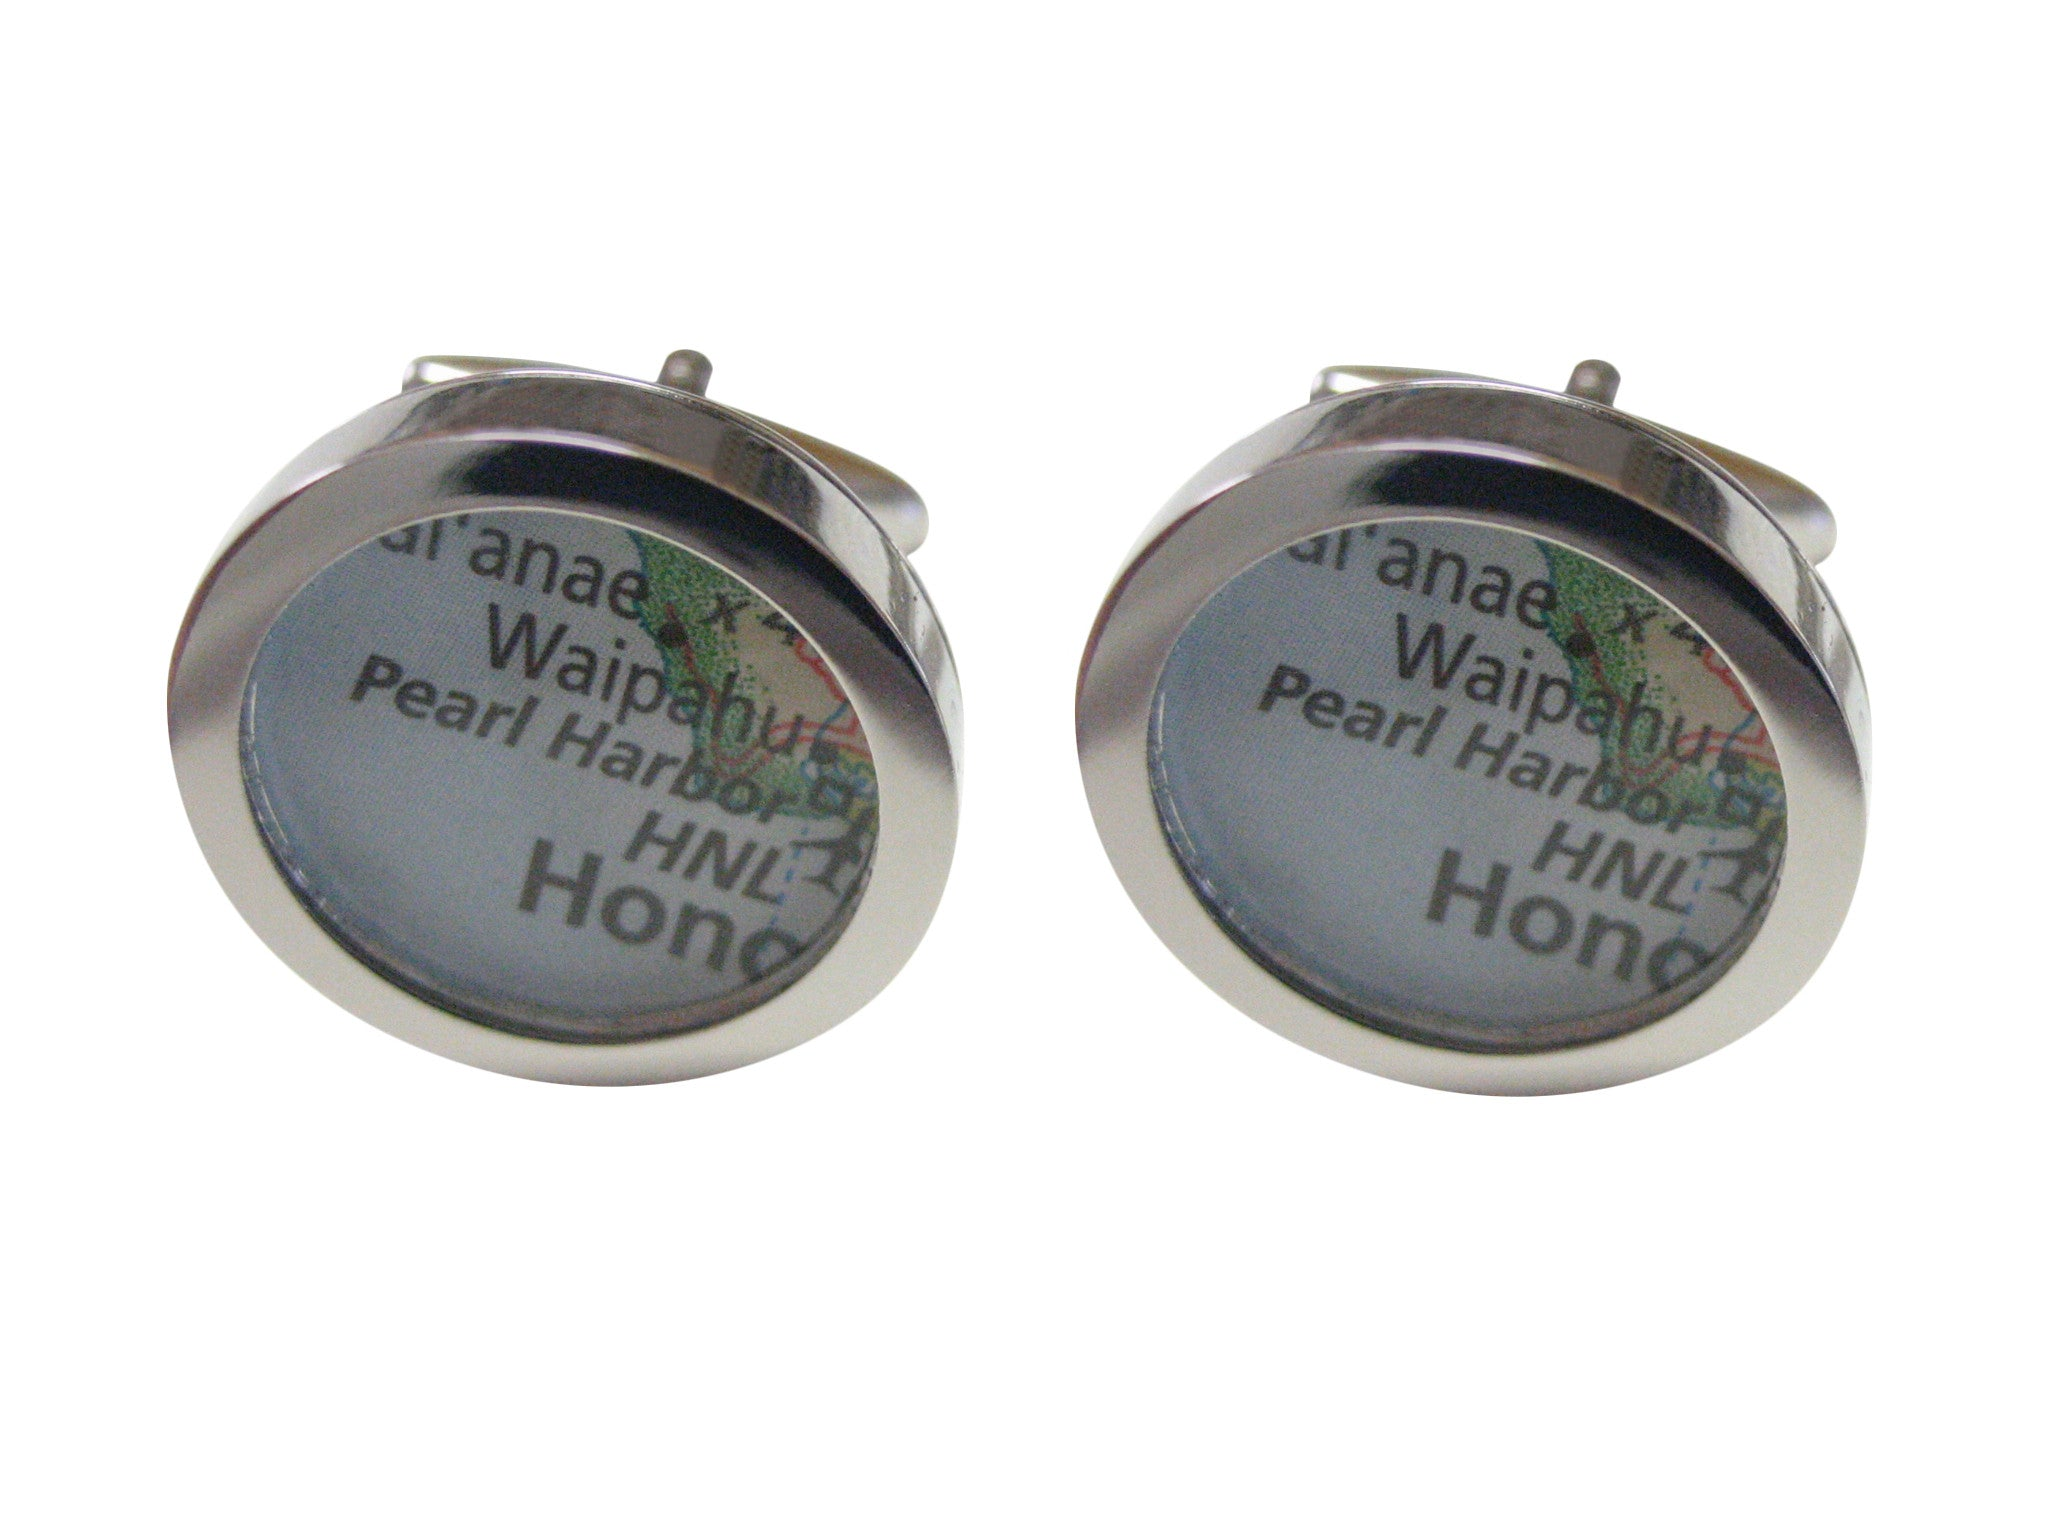 Pearl Harbor Hawaii Map Cufflinks